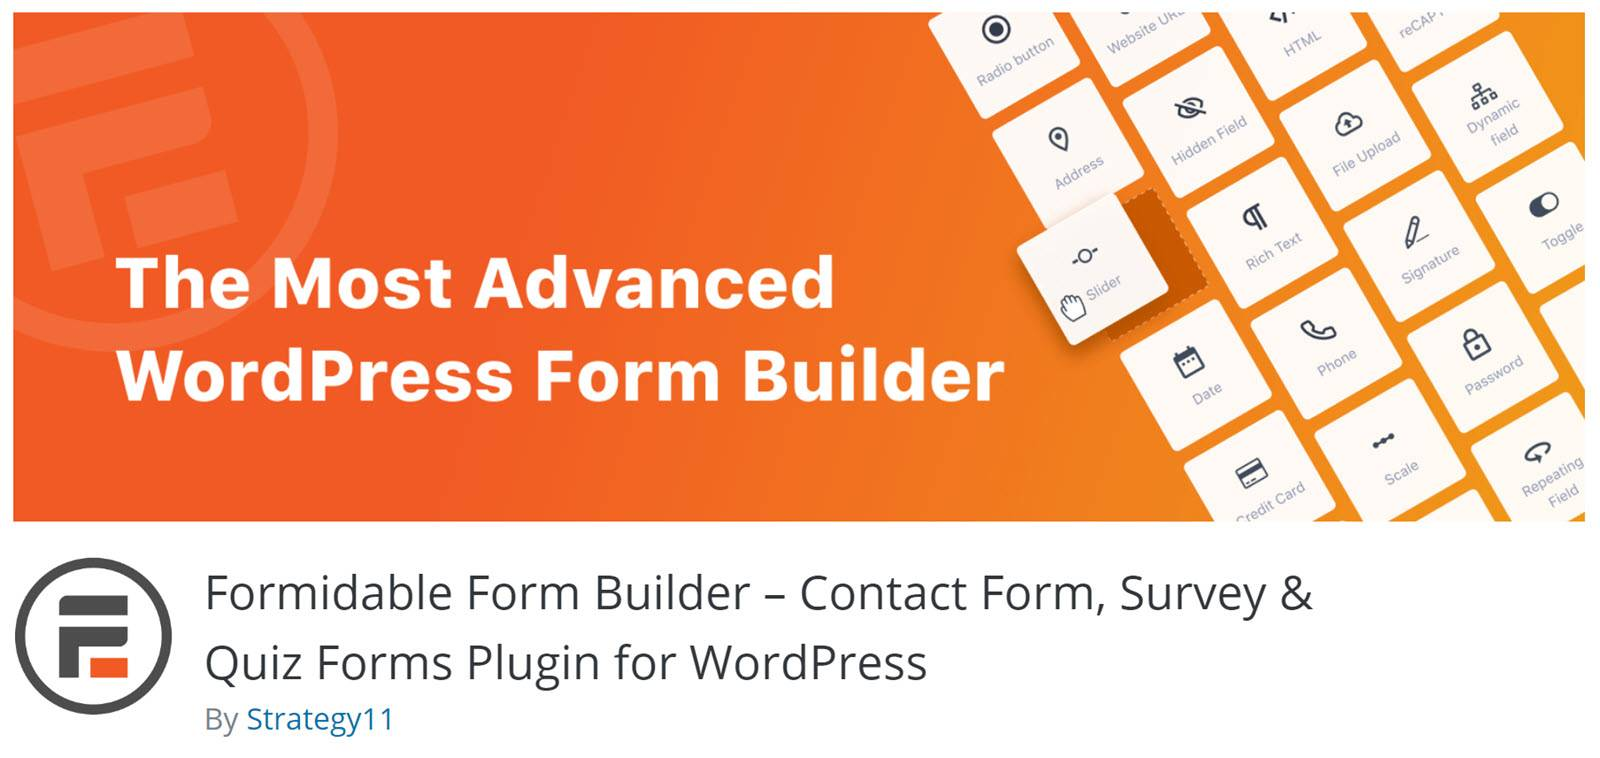 WordPress form builder plugins - Formidable